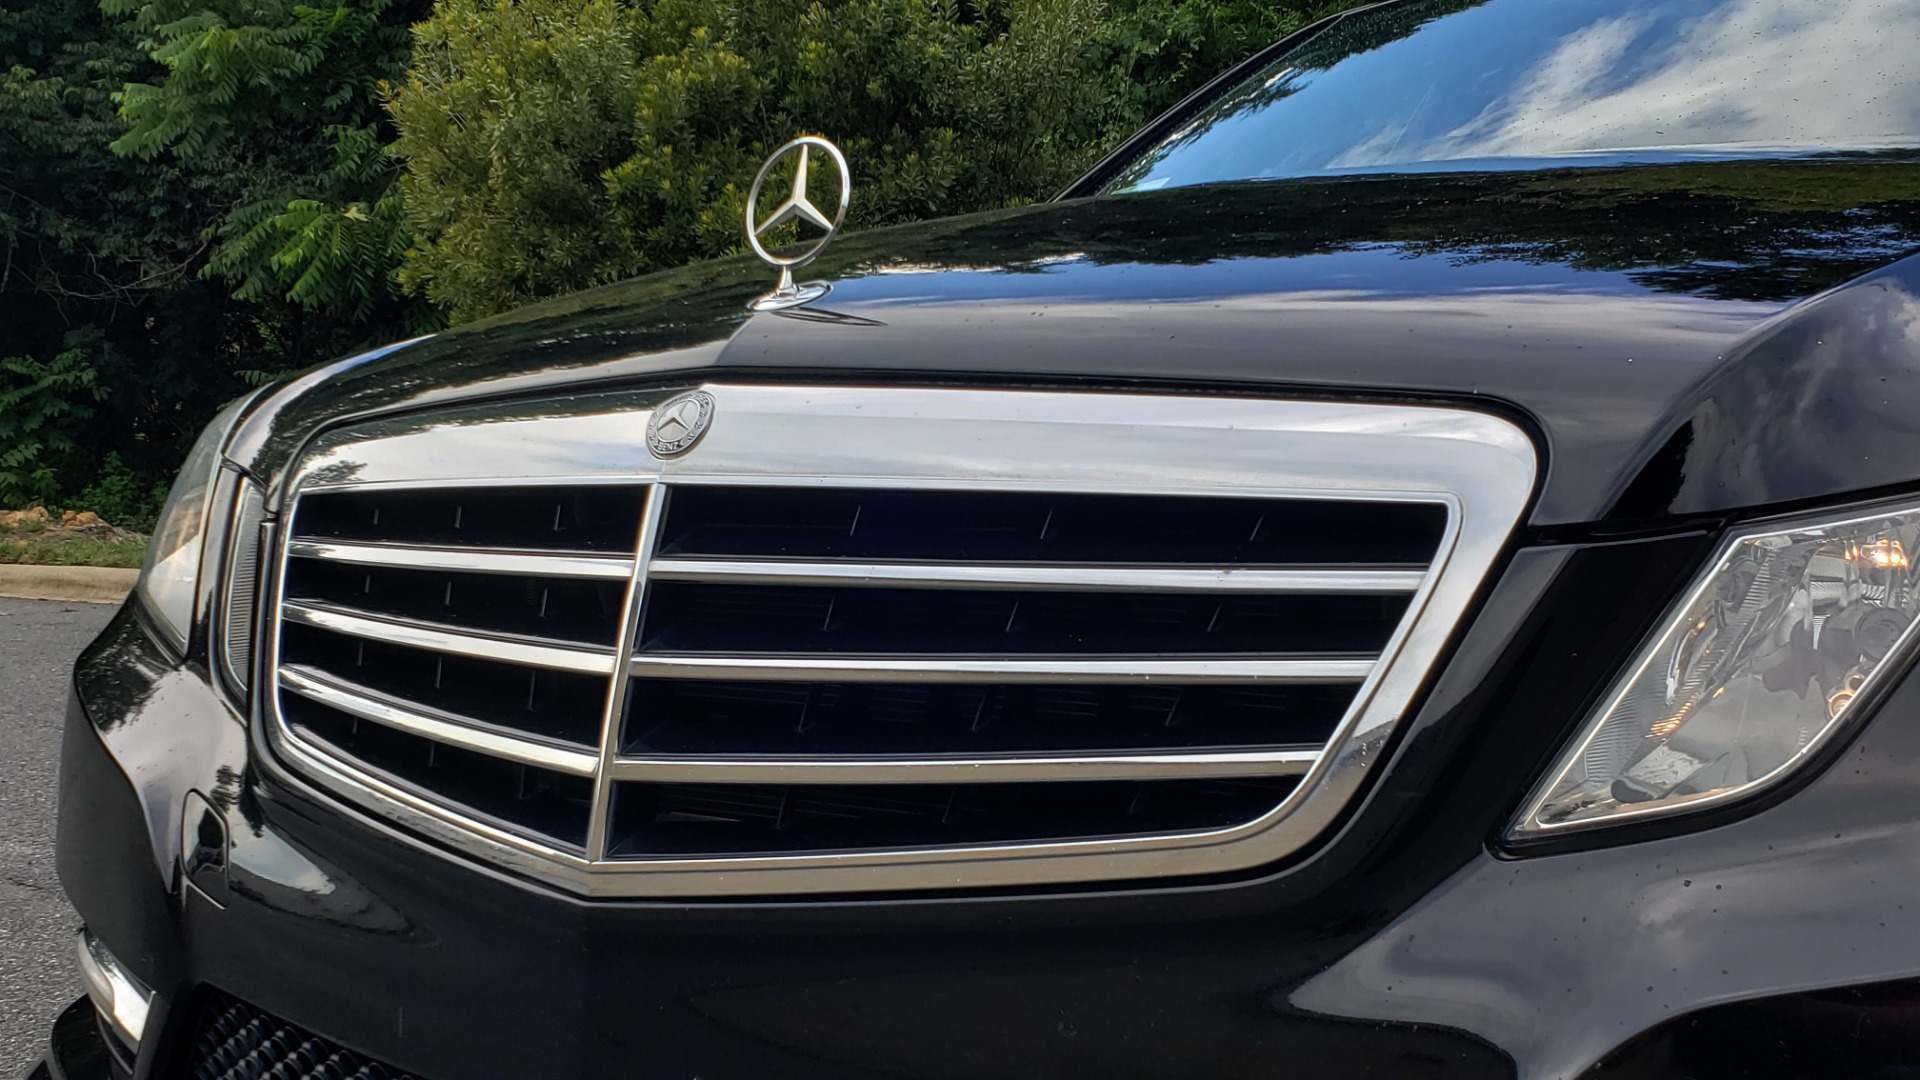 Used 2013 Mercedes-Benz E-CLASS E 350 SPORT / PREM PKG / NAV / SUNROOF / LANE TRACKING / BSA for sale $17,995 at Formula Imports in Charlotte NC 28227 22